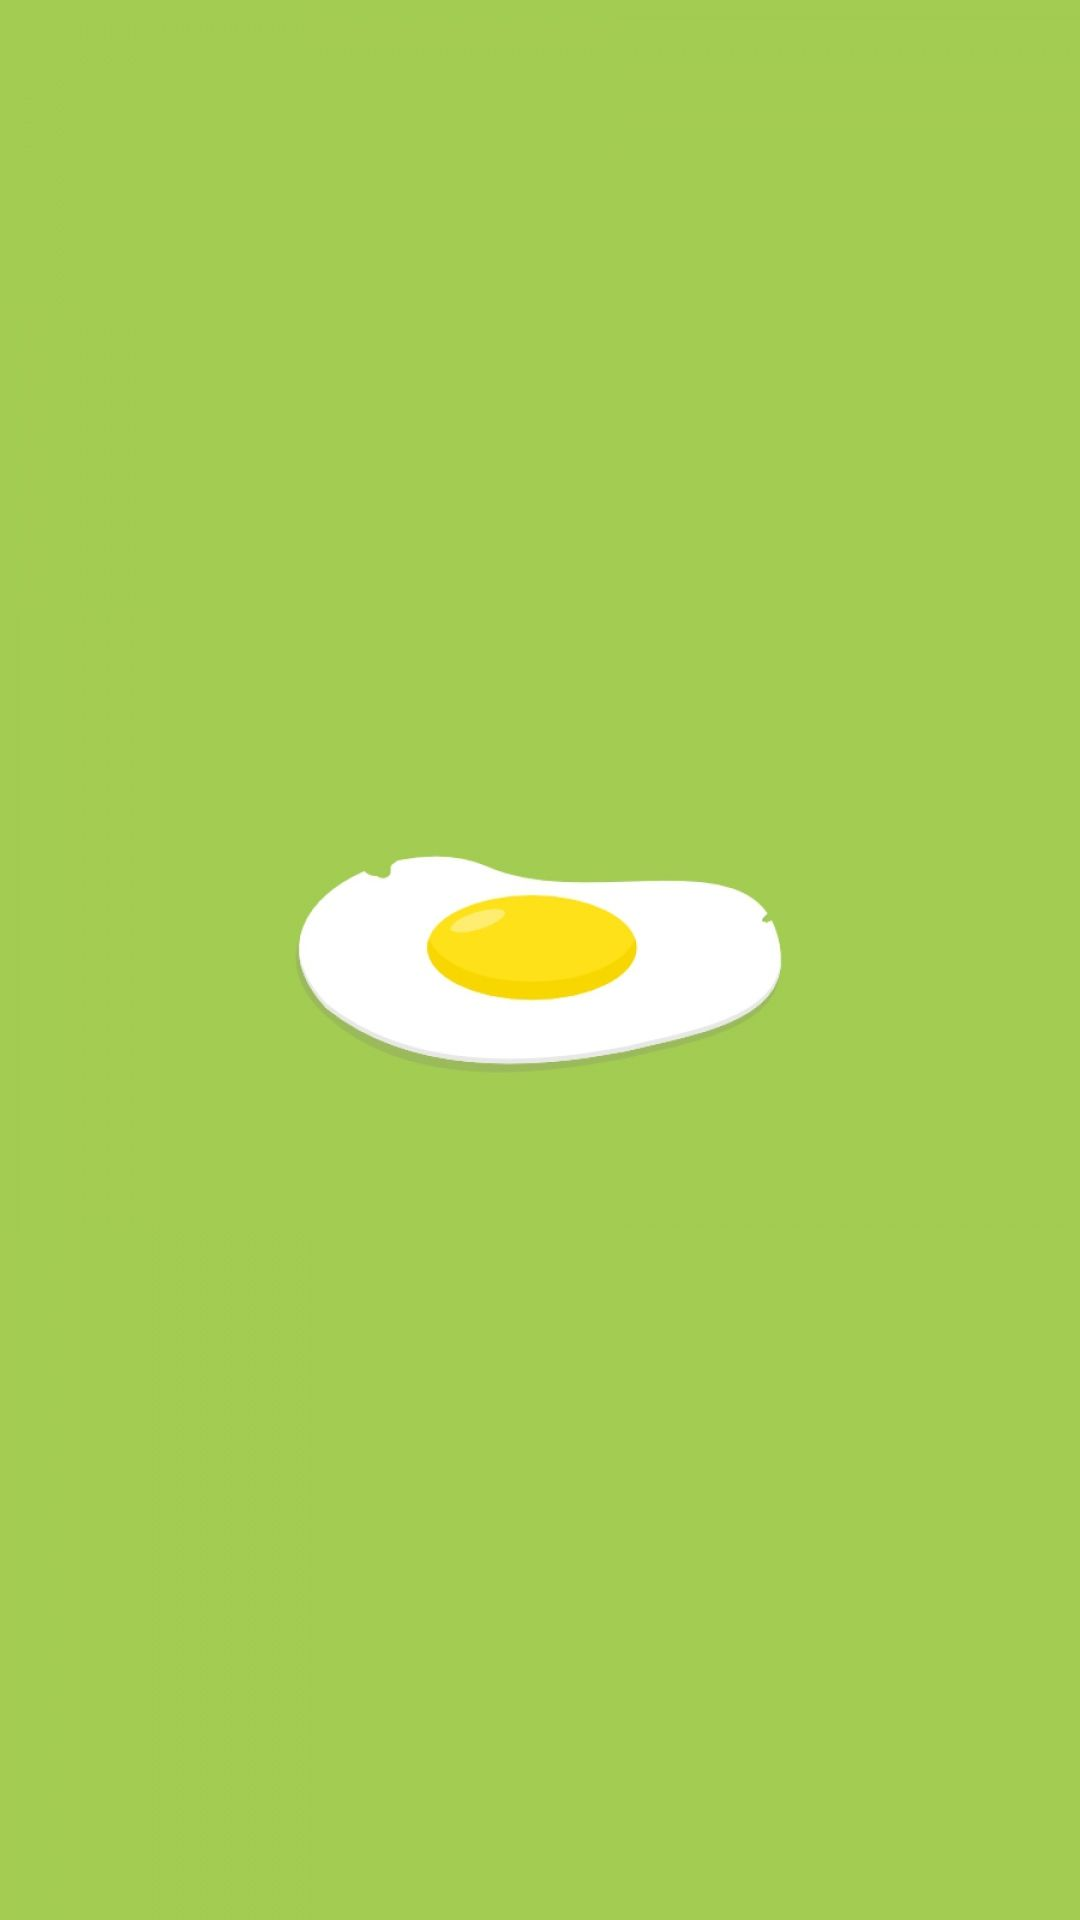 minimalist iphone wallpaper egg tap to see more minimalist iphone wallpapers 12634